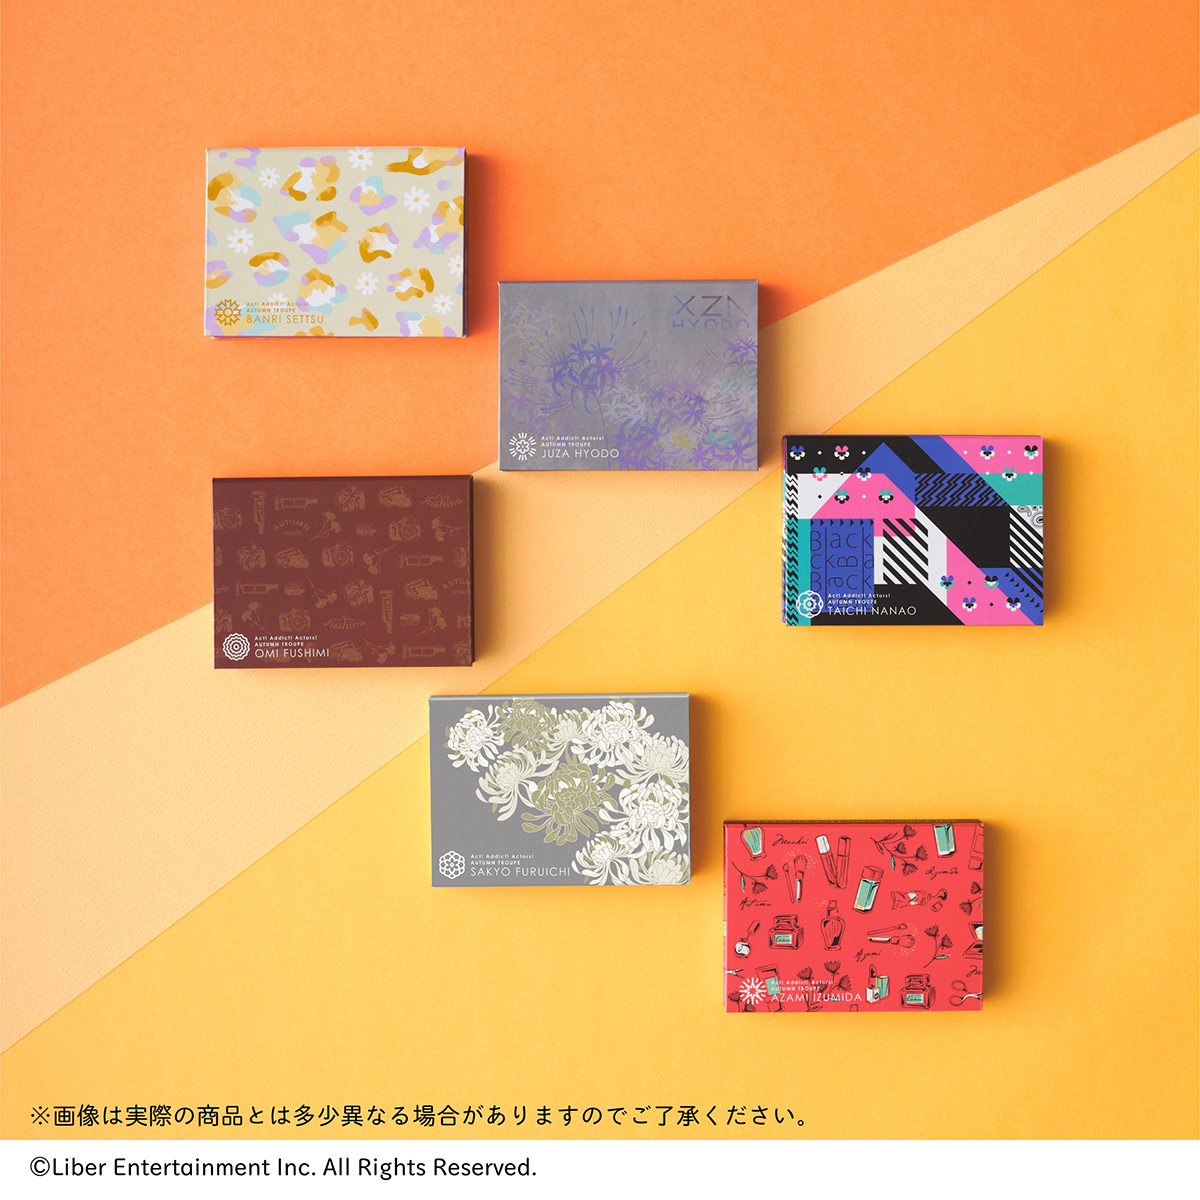 『A3! FacePowderCollection』秋組イメージ